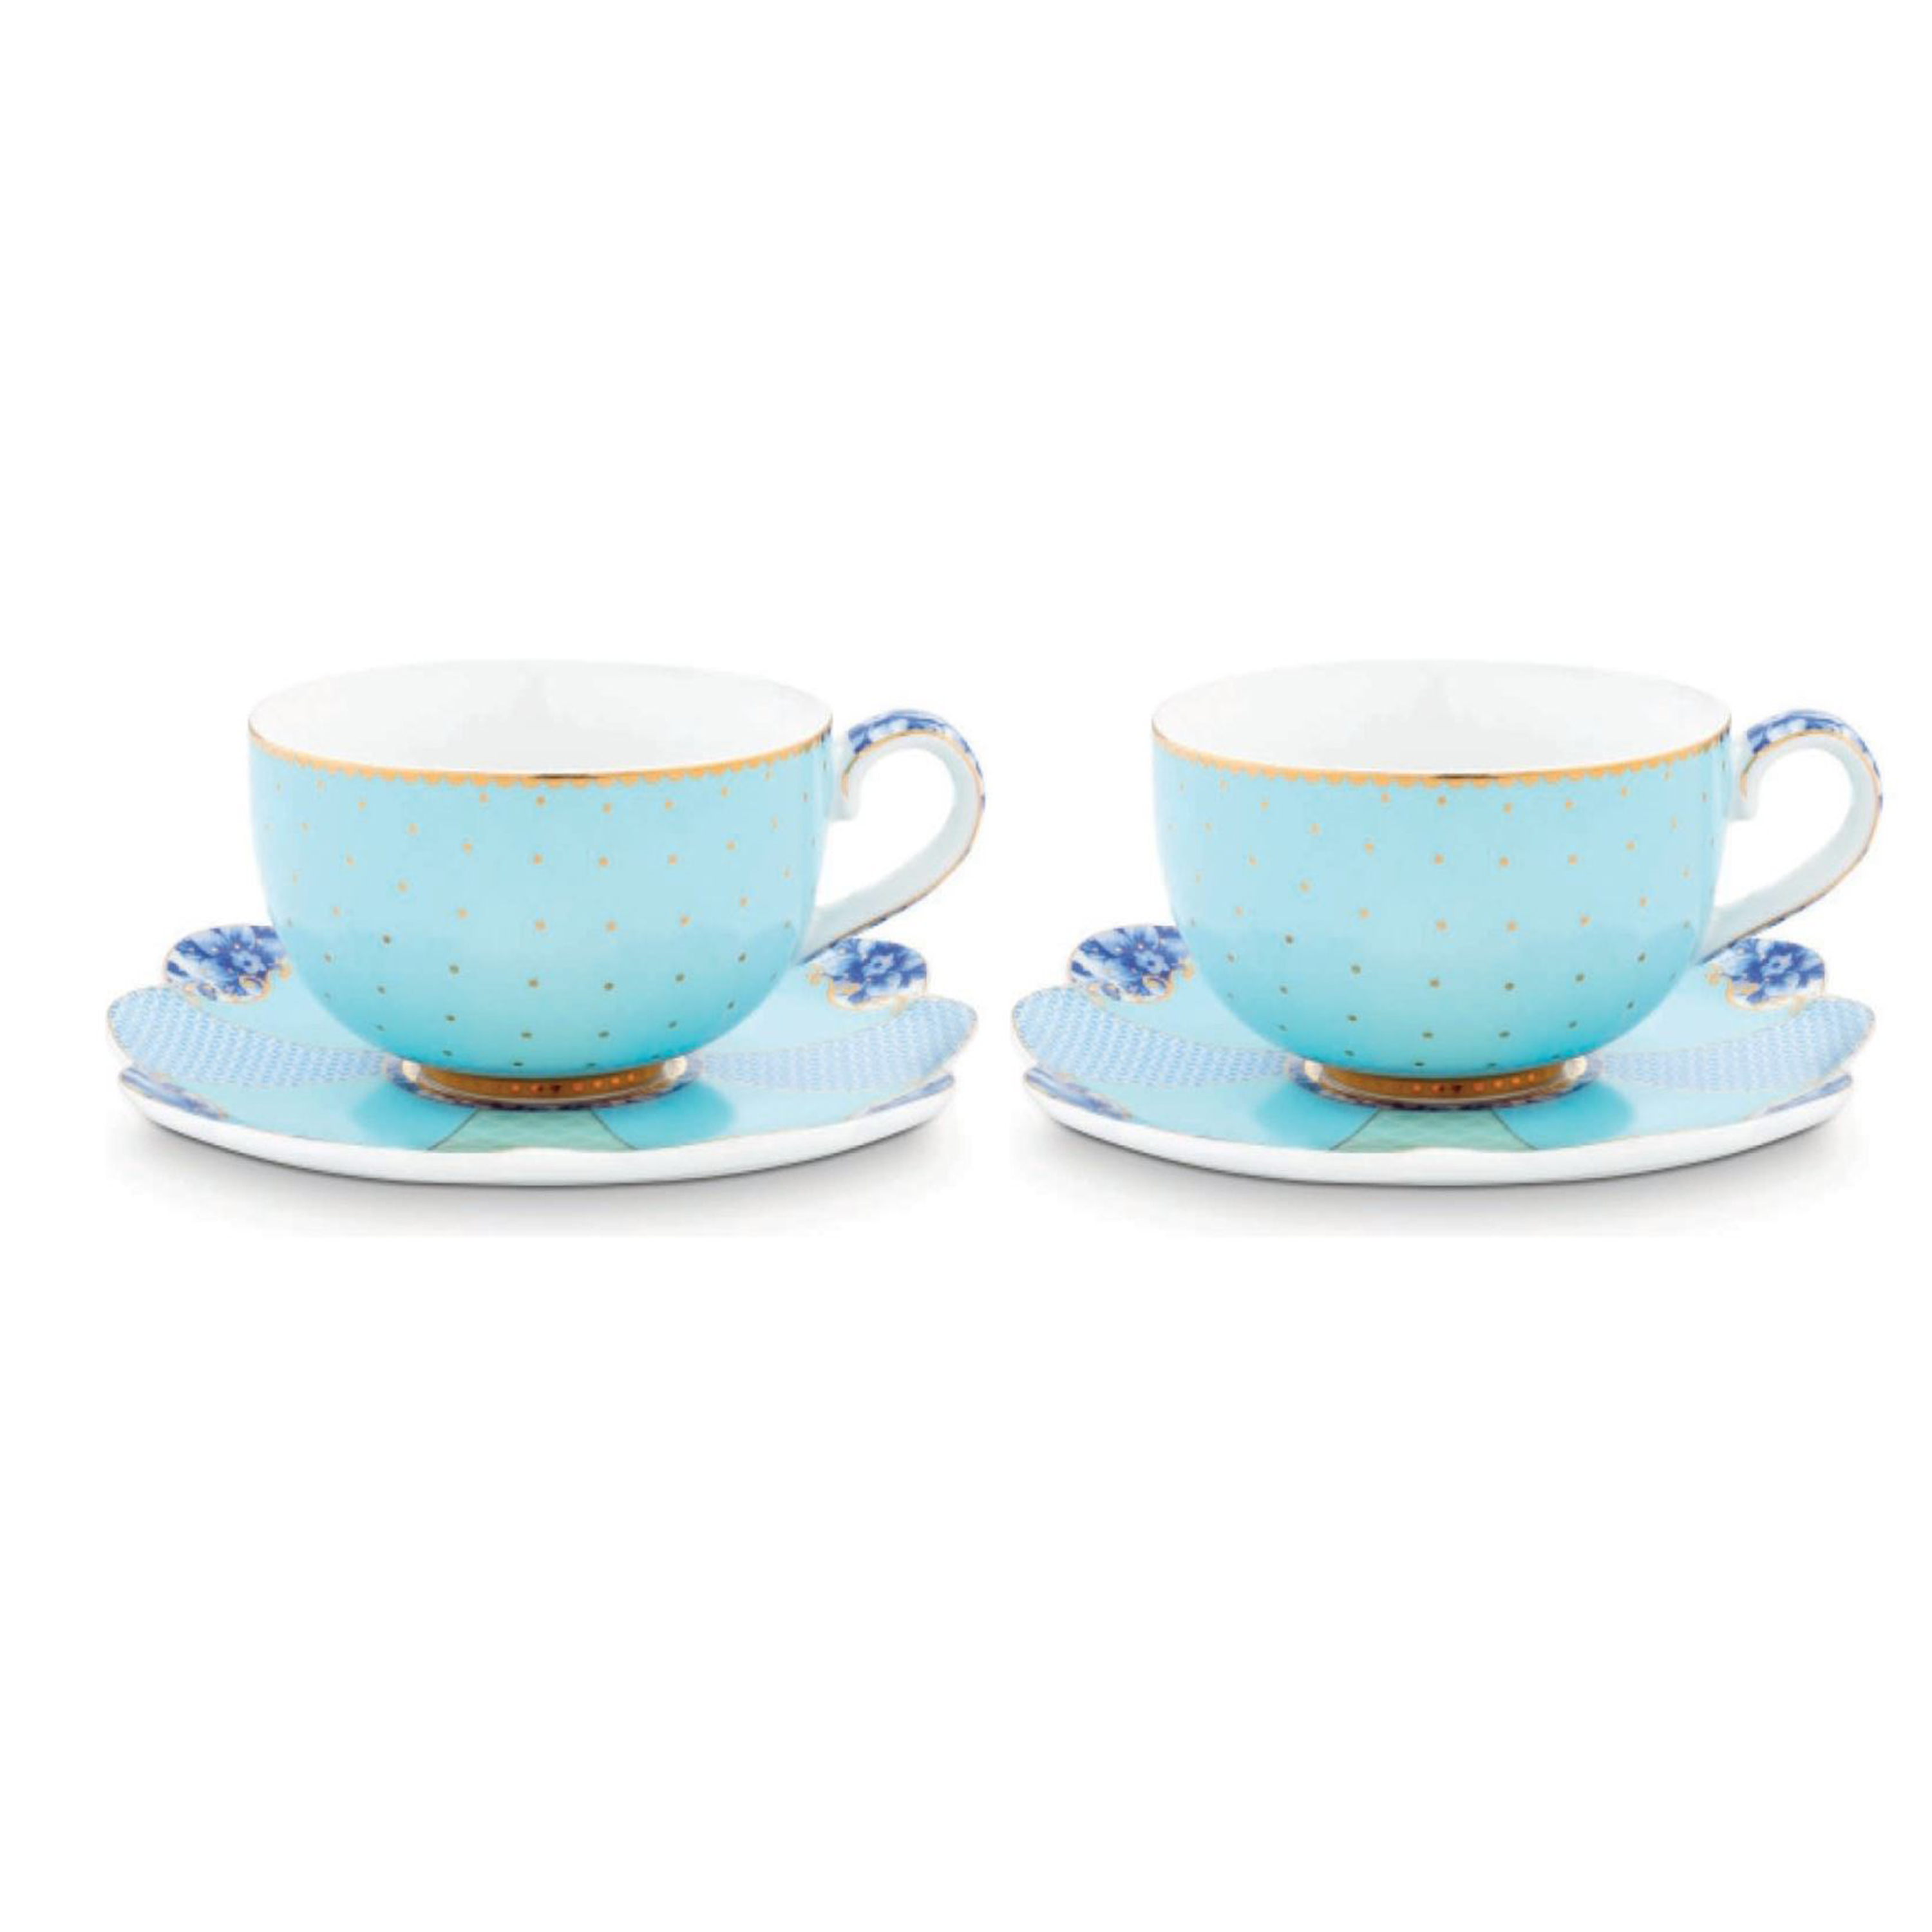 Personalized Gifts in Dubai and all over UAE - TEA ROYAL CUP & SAUCER